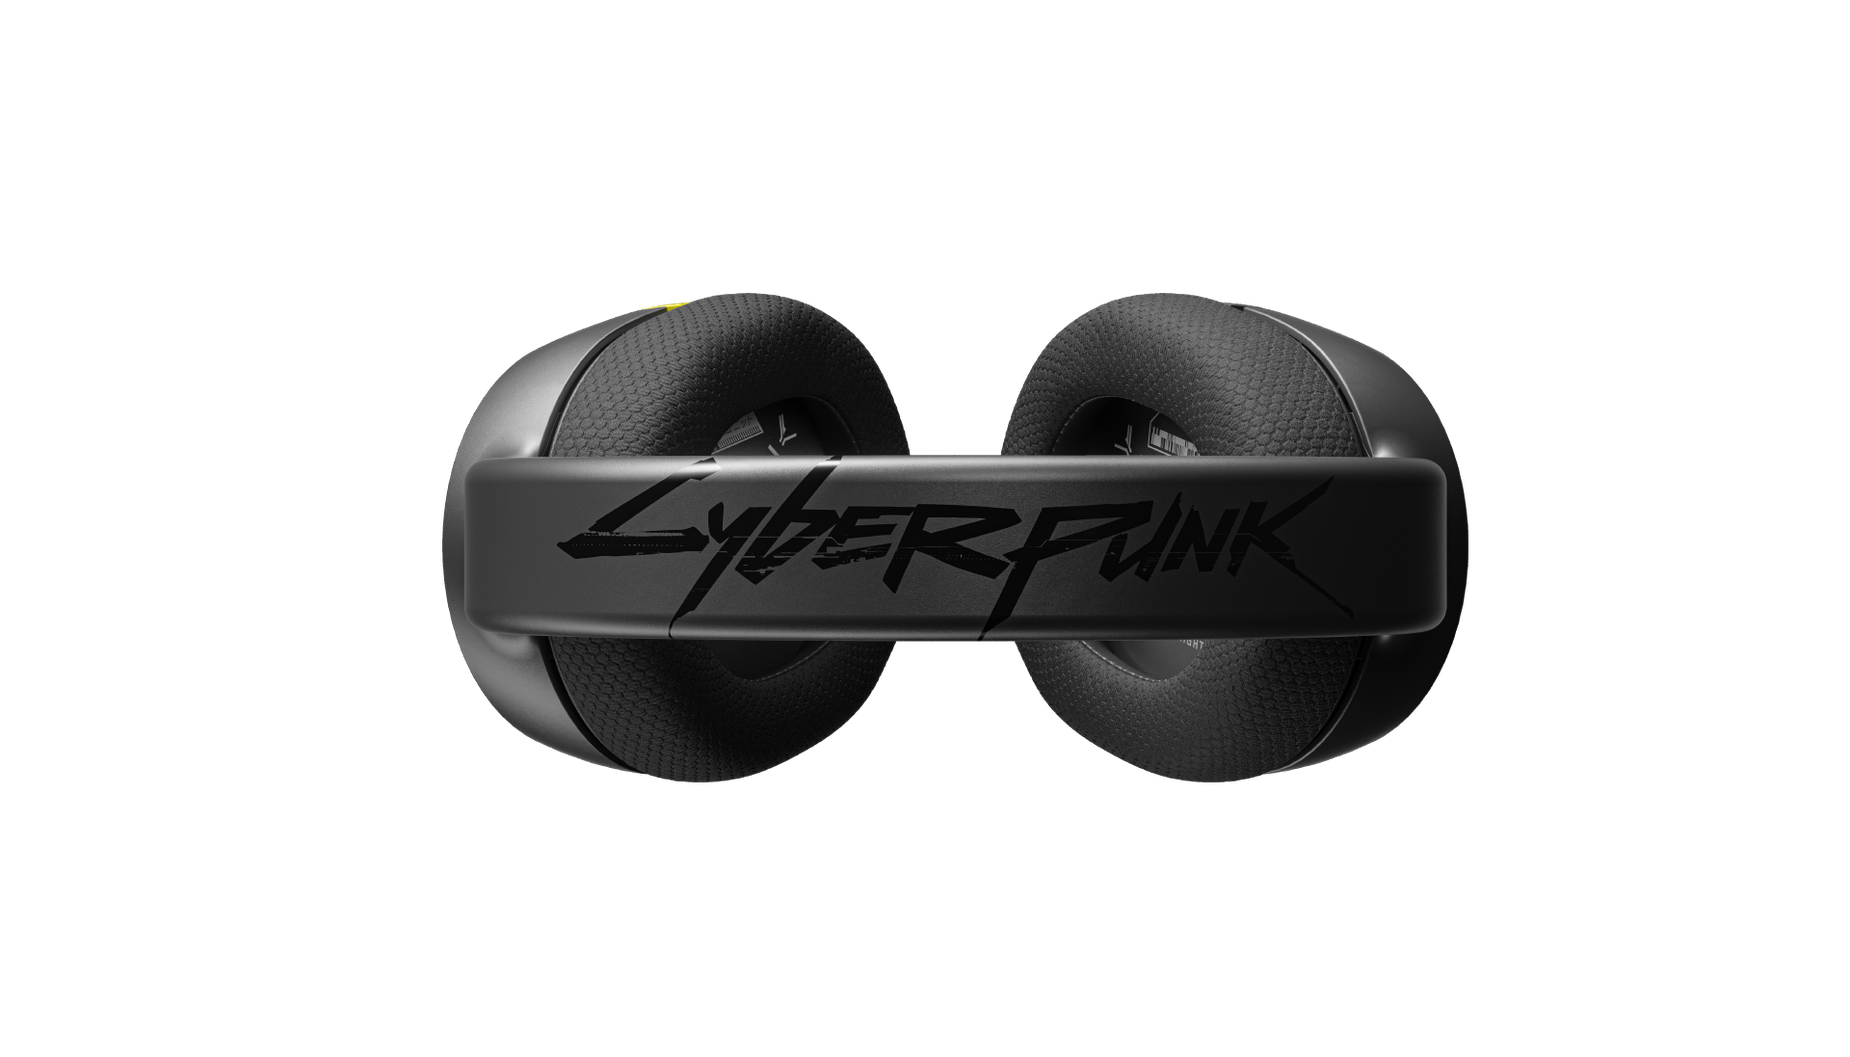 Arctis 1 Wireless Cyberpunk Edition gaming headset top angle showing the Cyberpunk branding on the headband